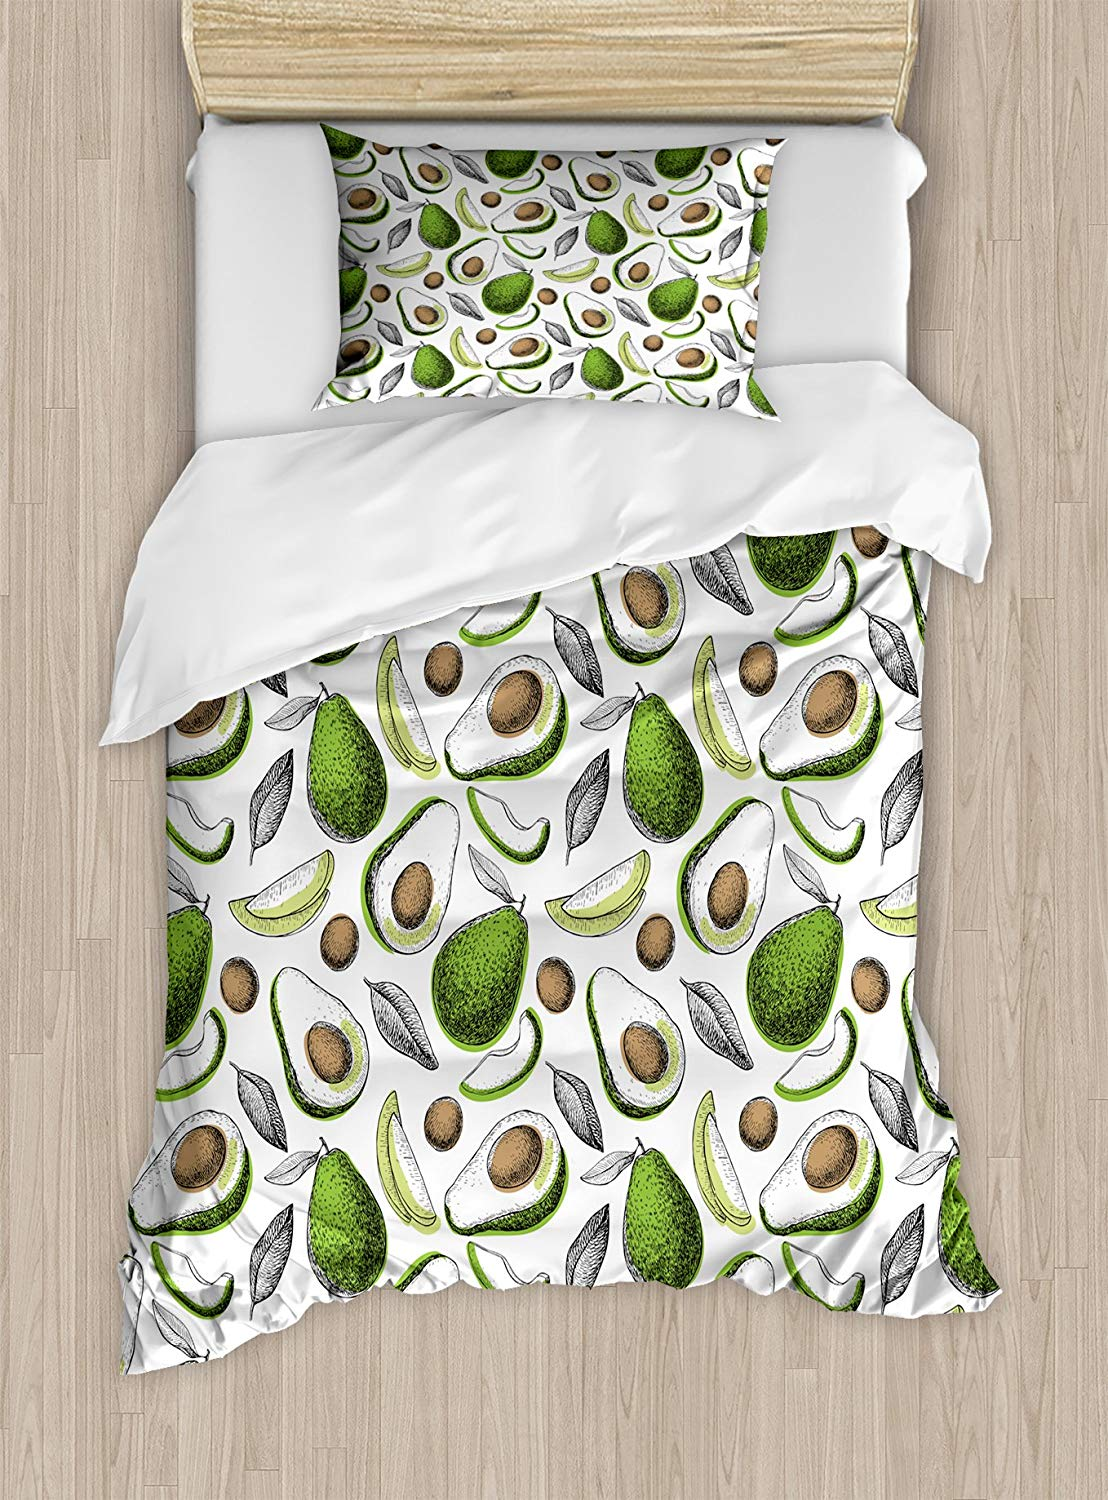 Vegetables Duvet Cover Set Twin Size, Organic Avocado Leaves Detox Antioxidant Lifestyle Stay Young PrintVegetables Duvet Cover Set Twin Size, Organic Avocado Leaves Detox Antioxidant Lifestyle Stay Young Print